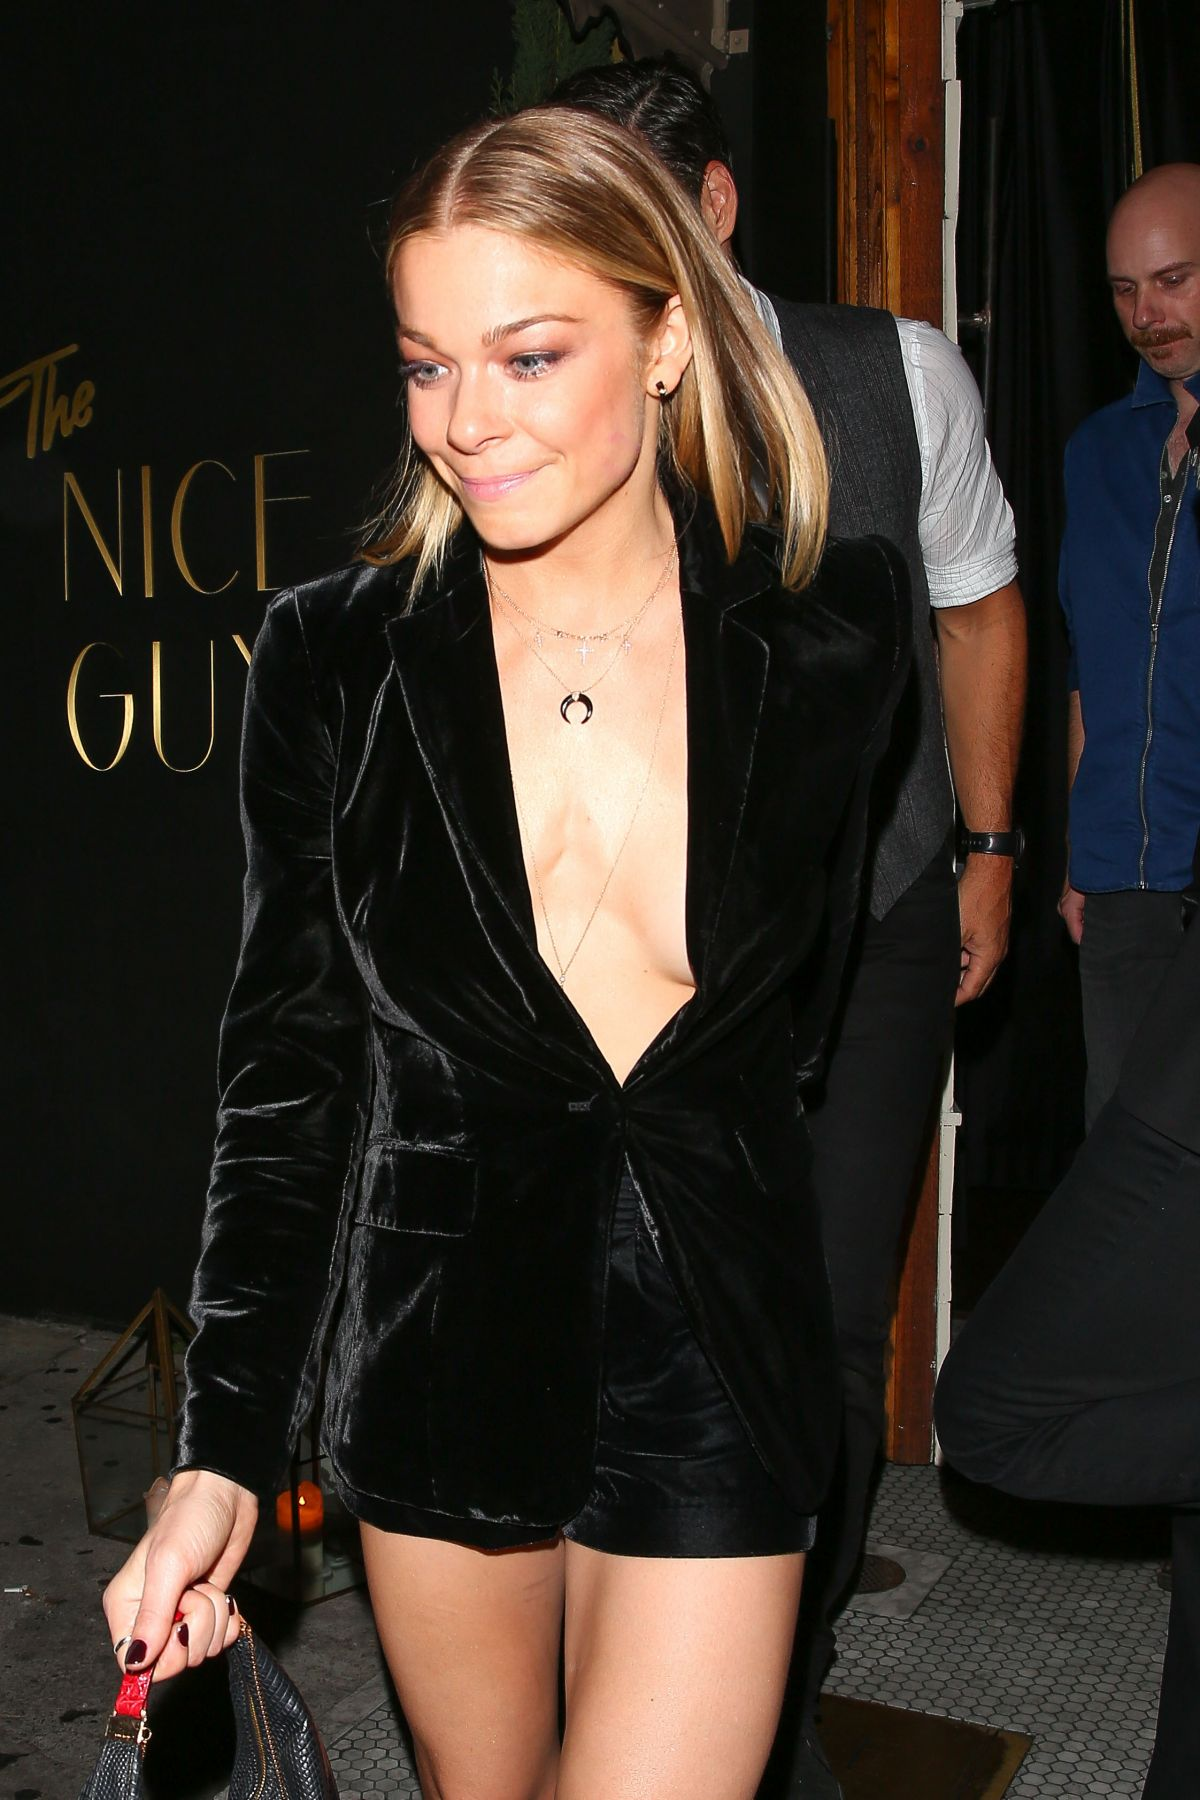 LeAnn Rimes Leaving The Nice Guy West Hollywood